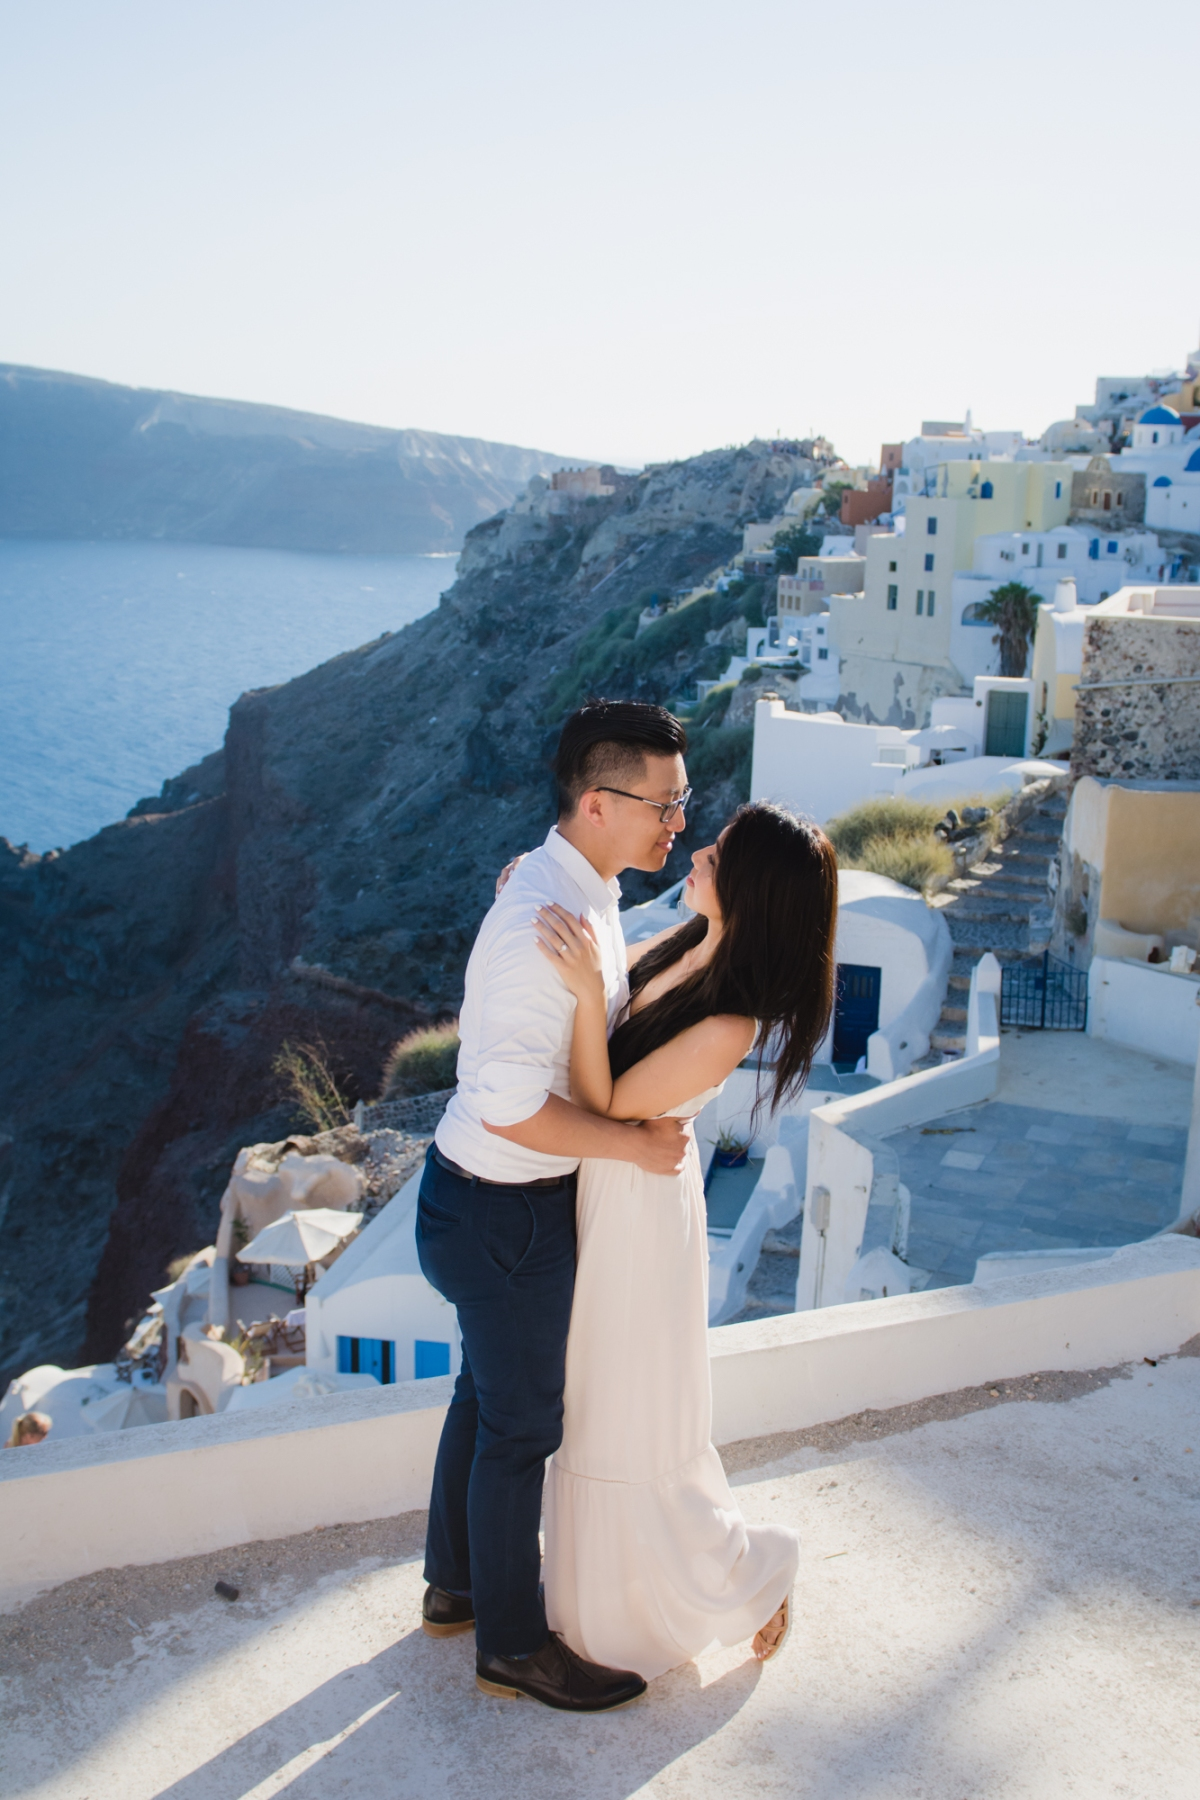 santorini-proposal-photo-session-love-story-fine-art-photographer-003